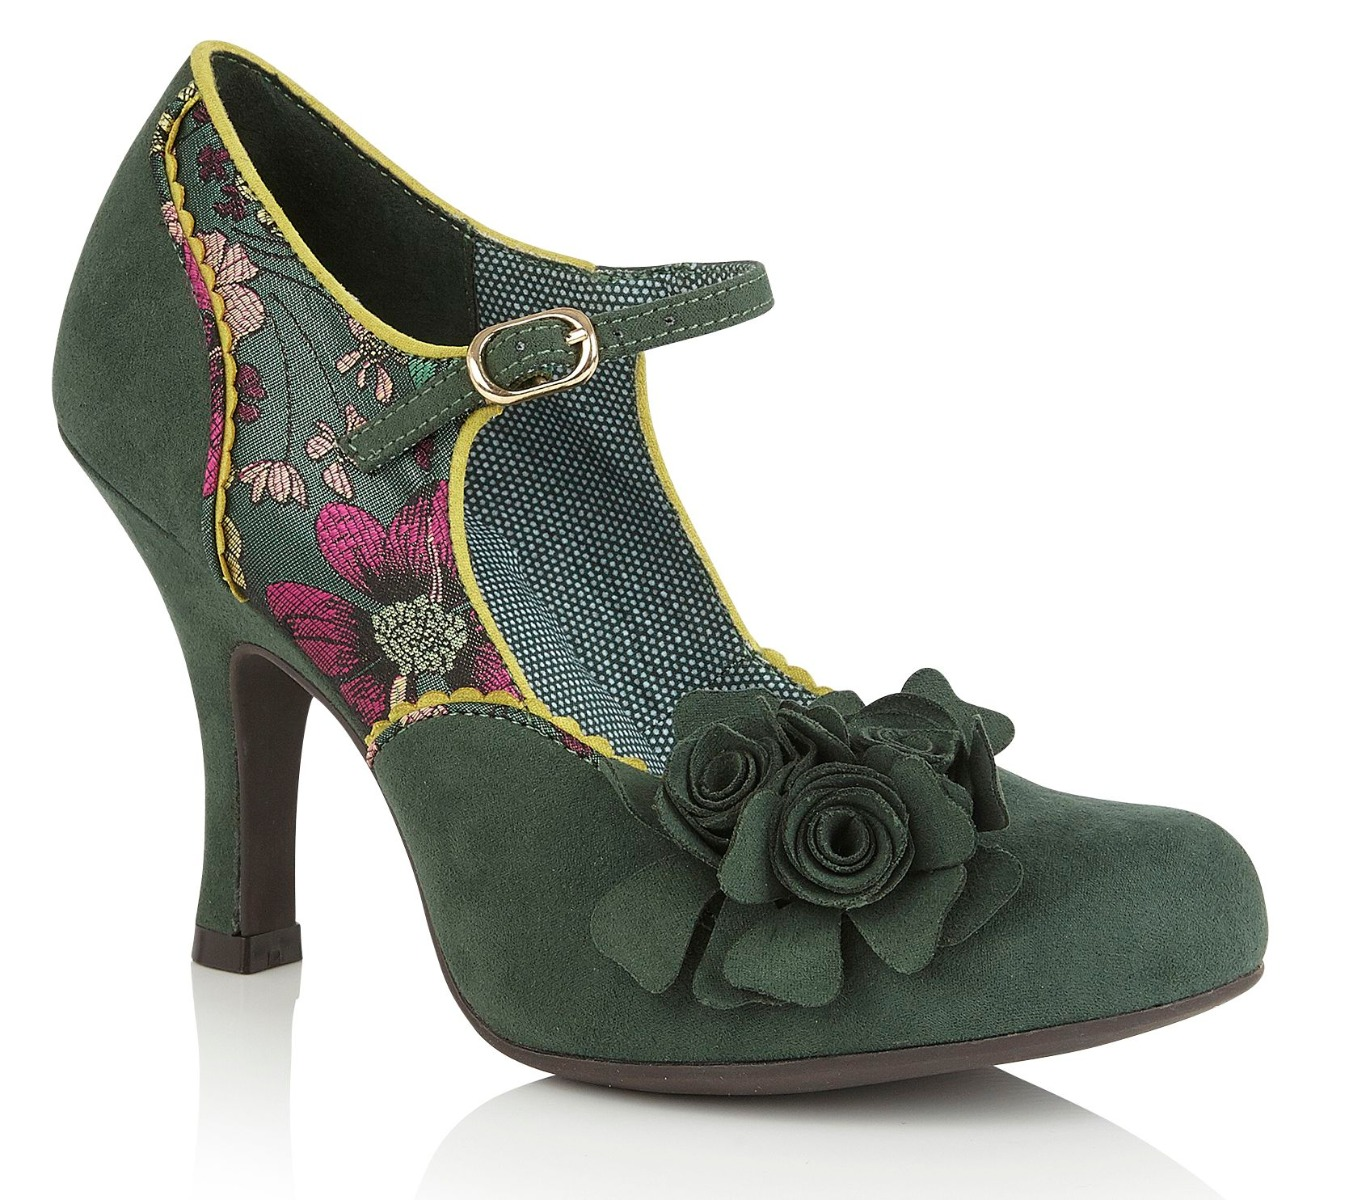 rs09303_chaussures-escarpins-pin-up-retro-50-s-glam-chic-ashley-vert